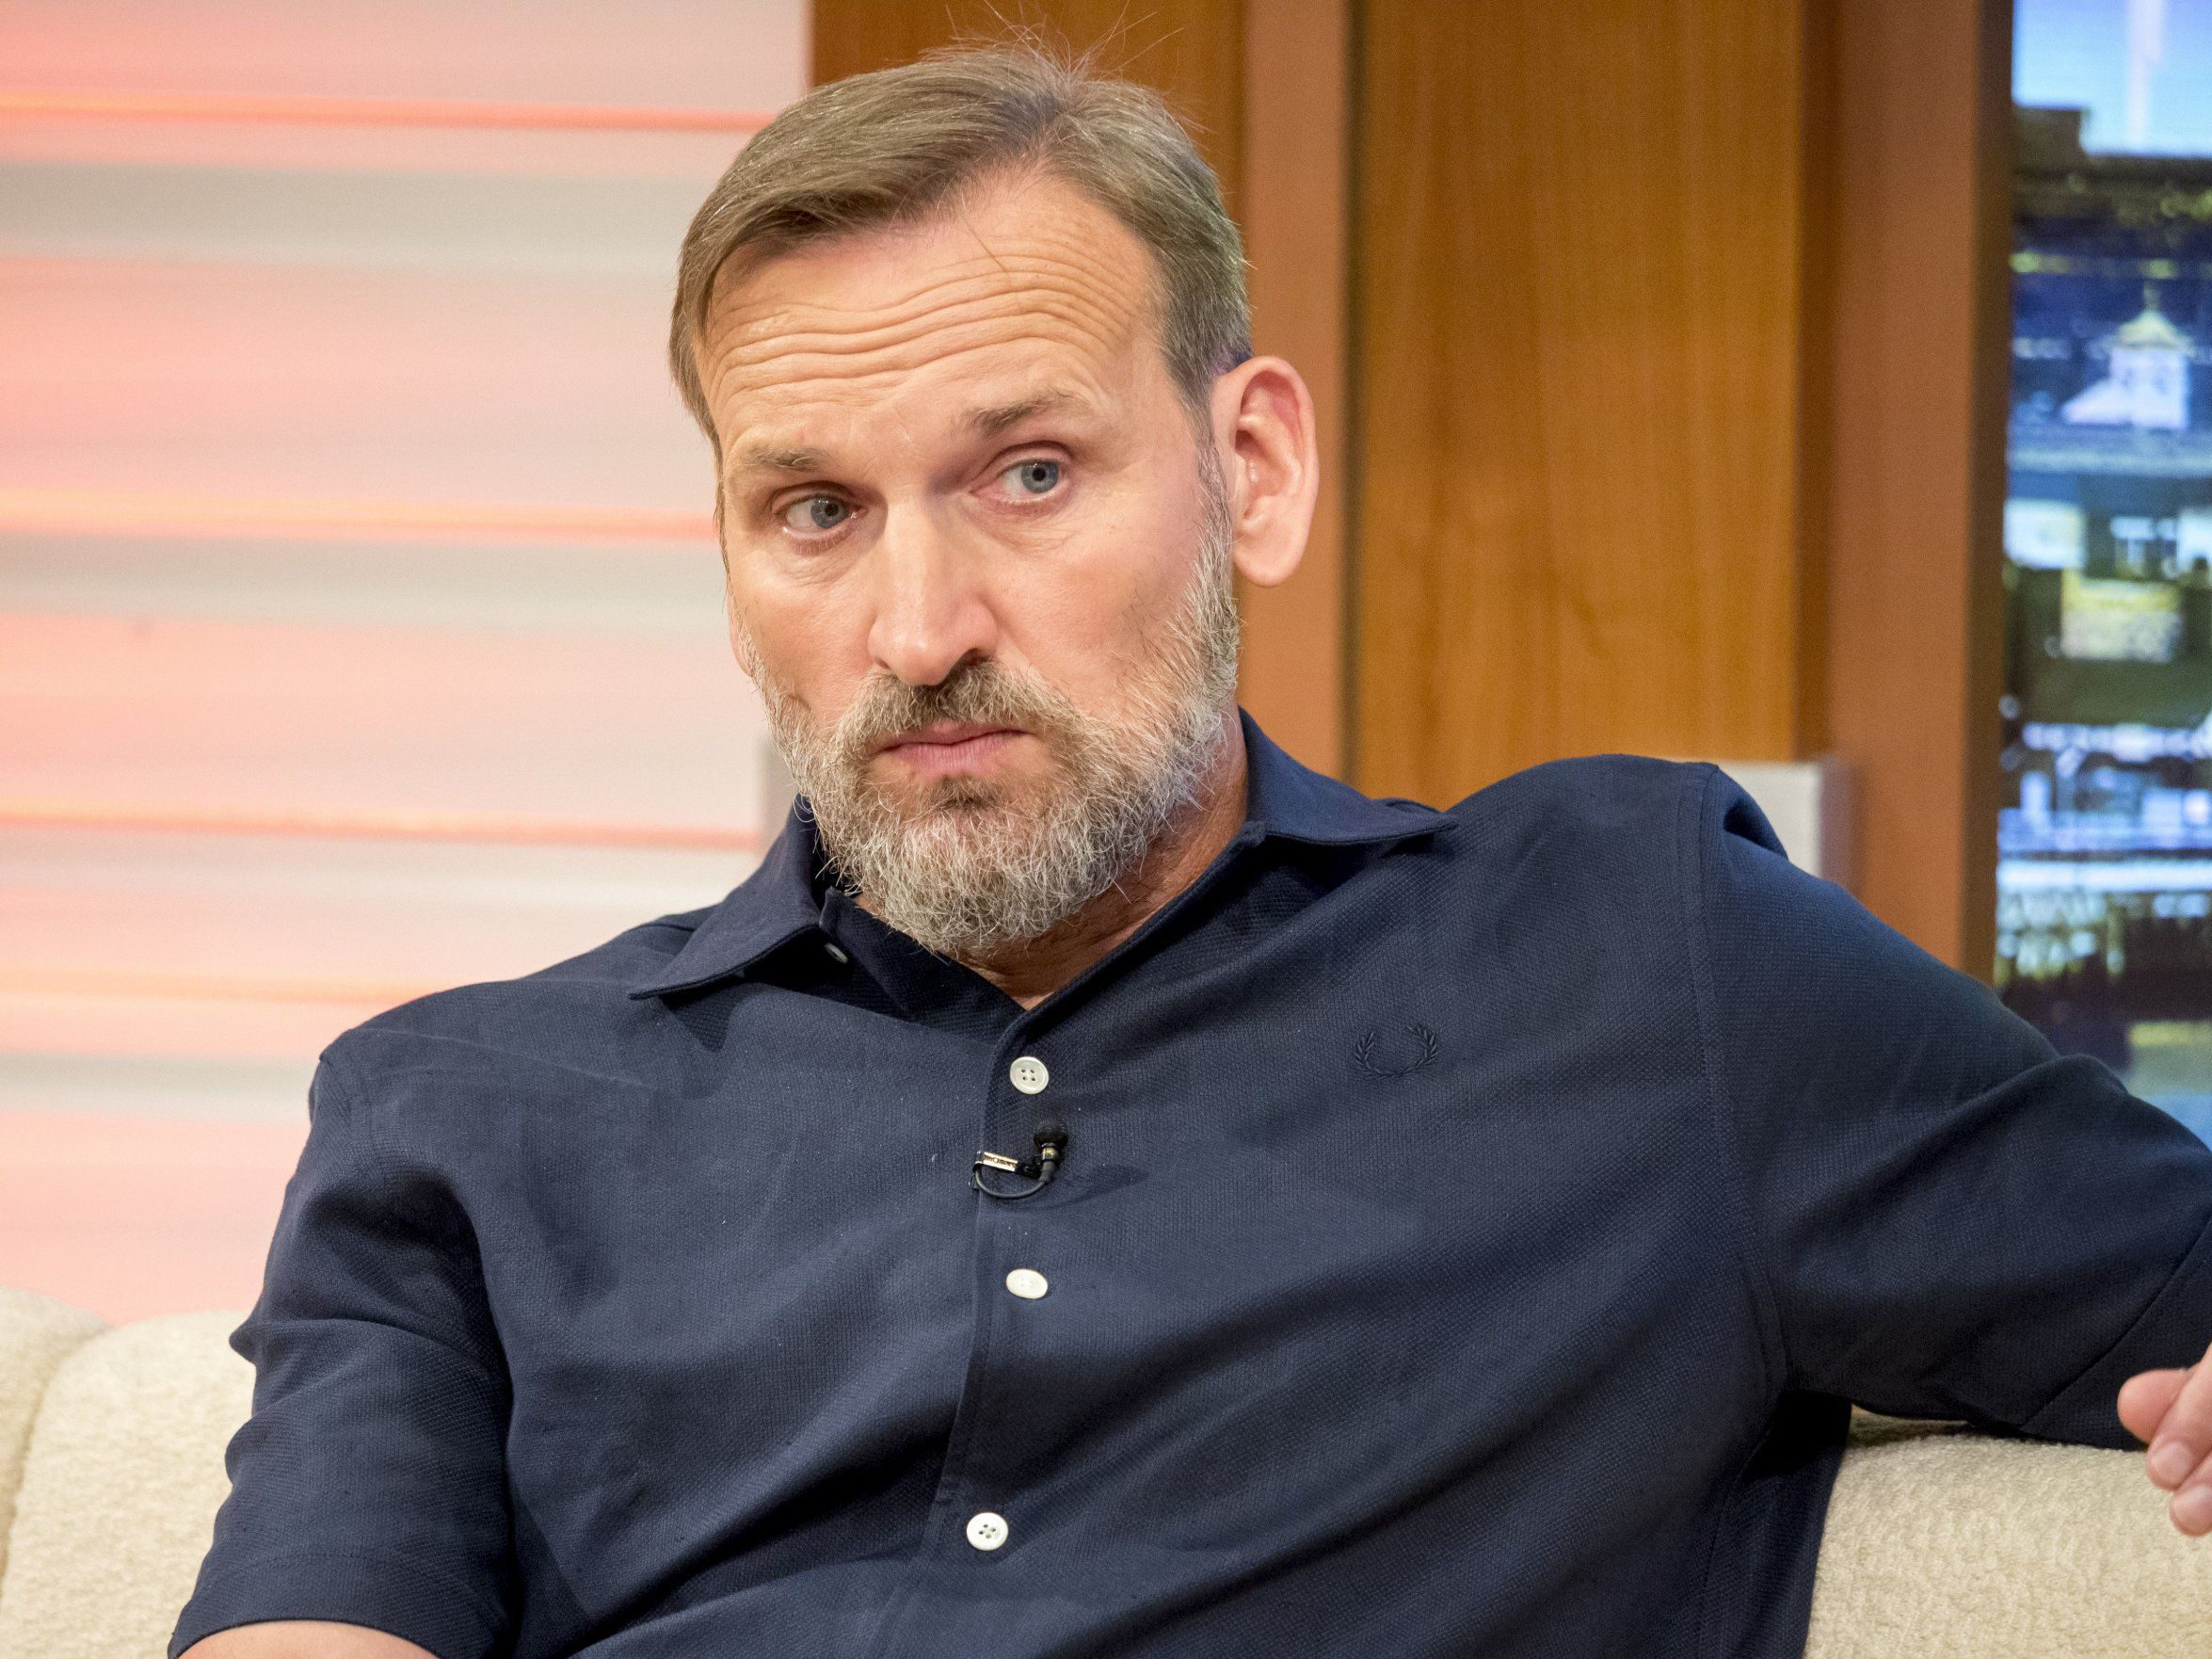 Christopher Eccleston breaks down on Good Morning Britain talking about being bullied as a 5-year-old